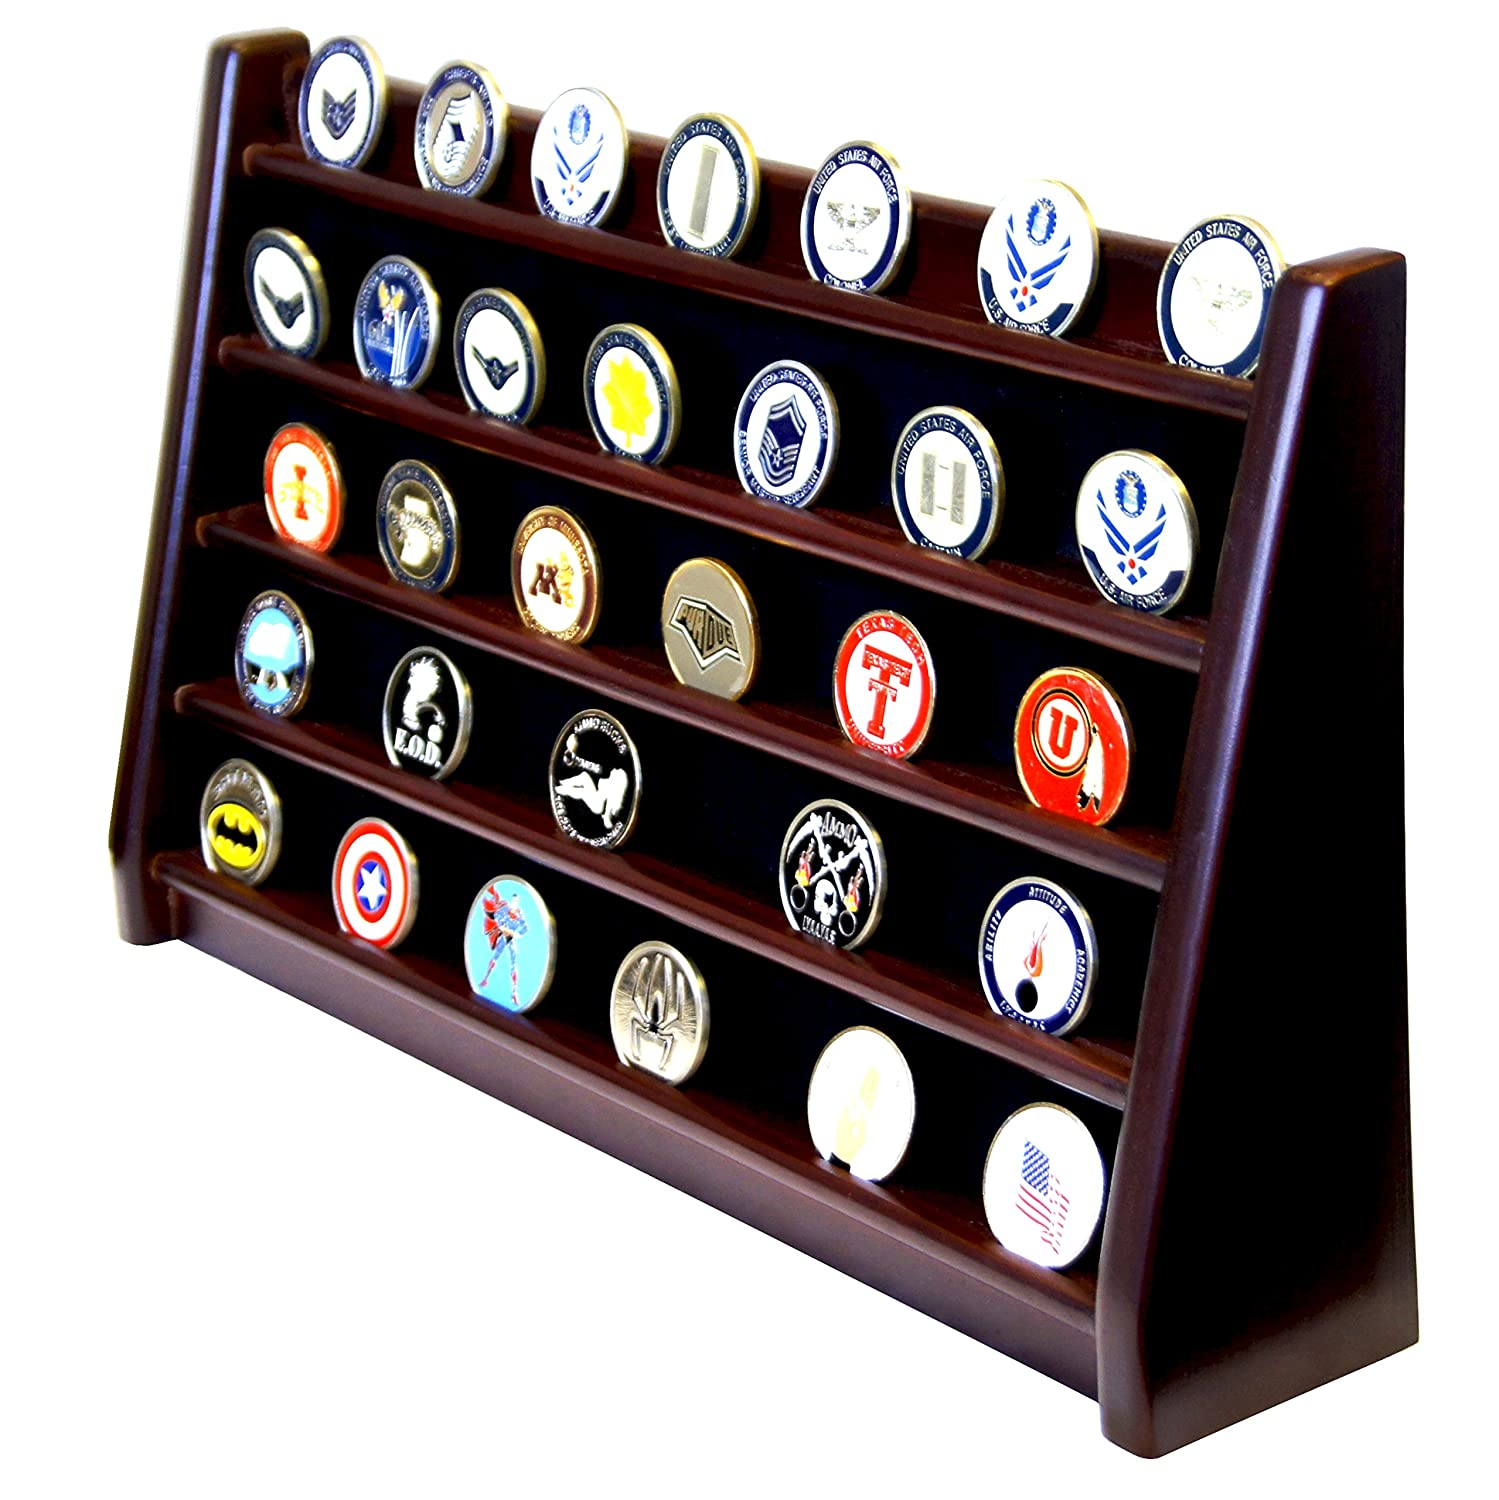 DECOMIL – 5 Rows Shelf Challenge Coin Holder Display Casino Chips Holder Solid Wood – Cherry Finish